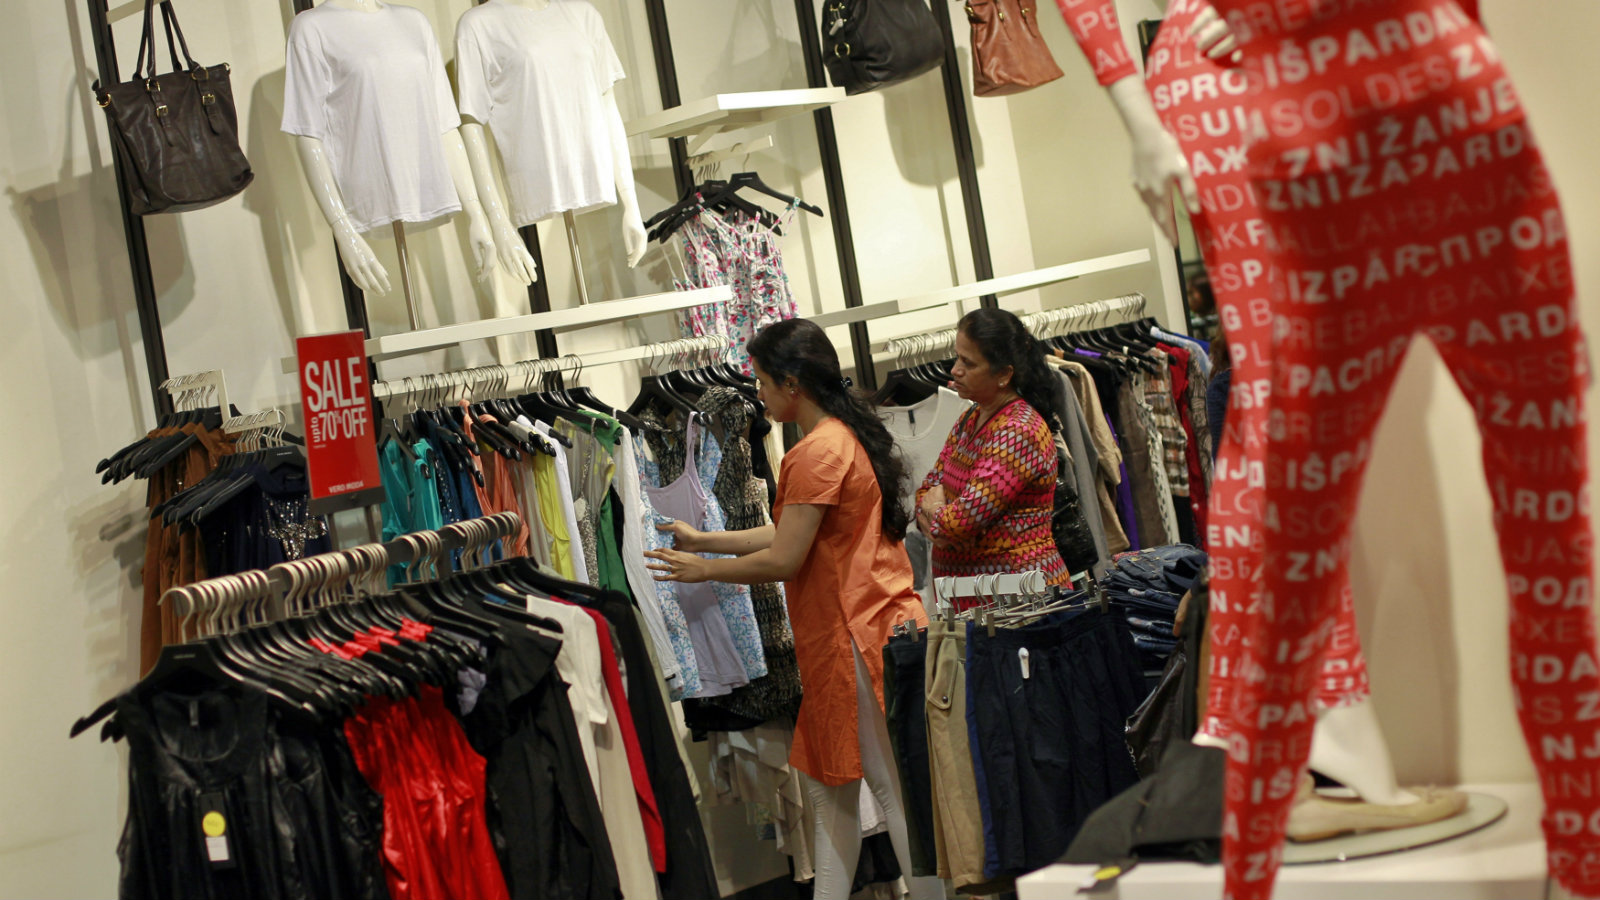 People shop for clothes at a store during a seasonal sale inside a shopping mall in Mumbai July 14, 2012. Asia's third-largest economy is growing at its slowest pace in nine years and sluggish consumer spending is forcing mall developers to scale back plans. It will take years for the glut of retail space conceived during headier times to be absorbed by tenants, even as India fine-tunes rules to make it easier for foreign shops to enter the country on their own, analysts say. Picture taken July 14, 2012. To match analysis INDIA-MALL/